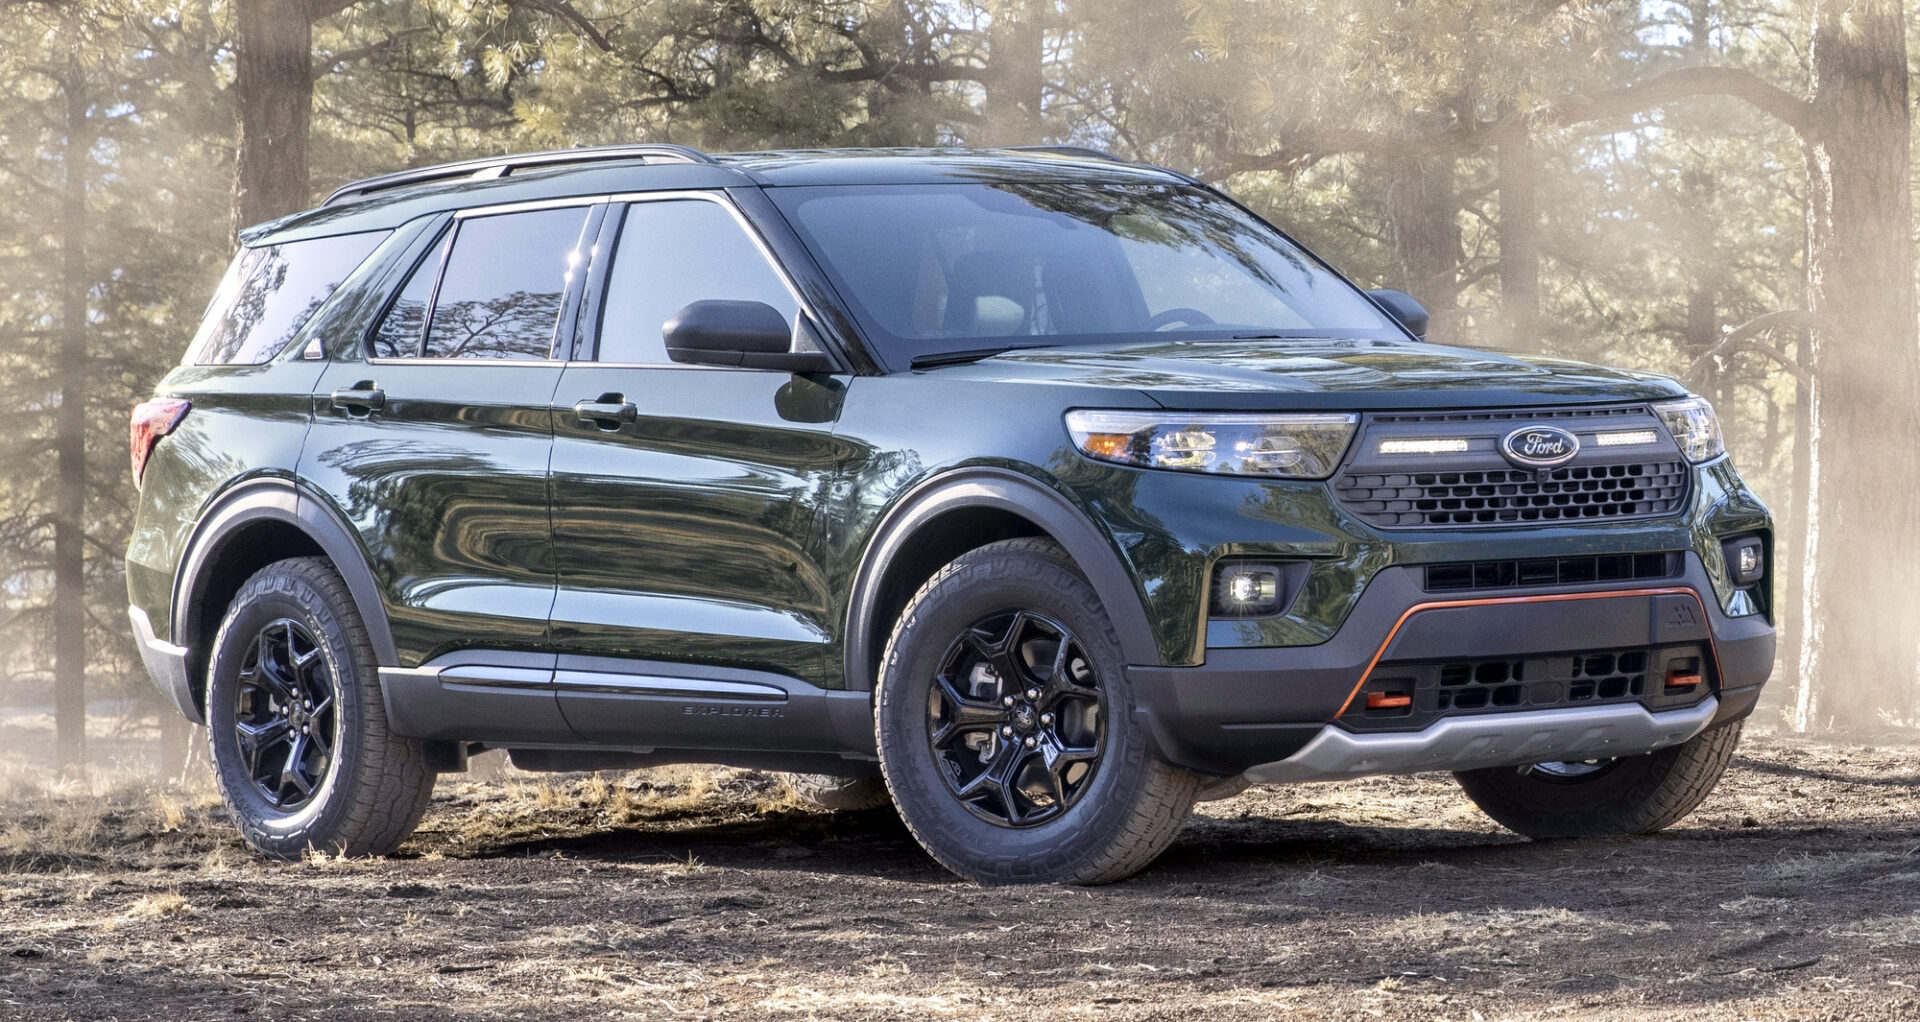 Feature: What You Need to Know About the 2021 Ford Explorer